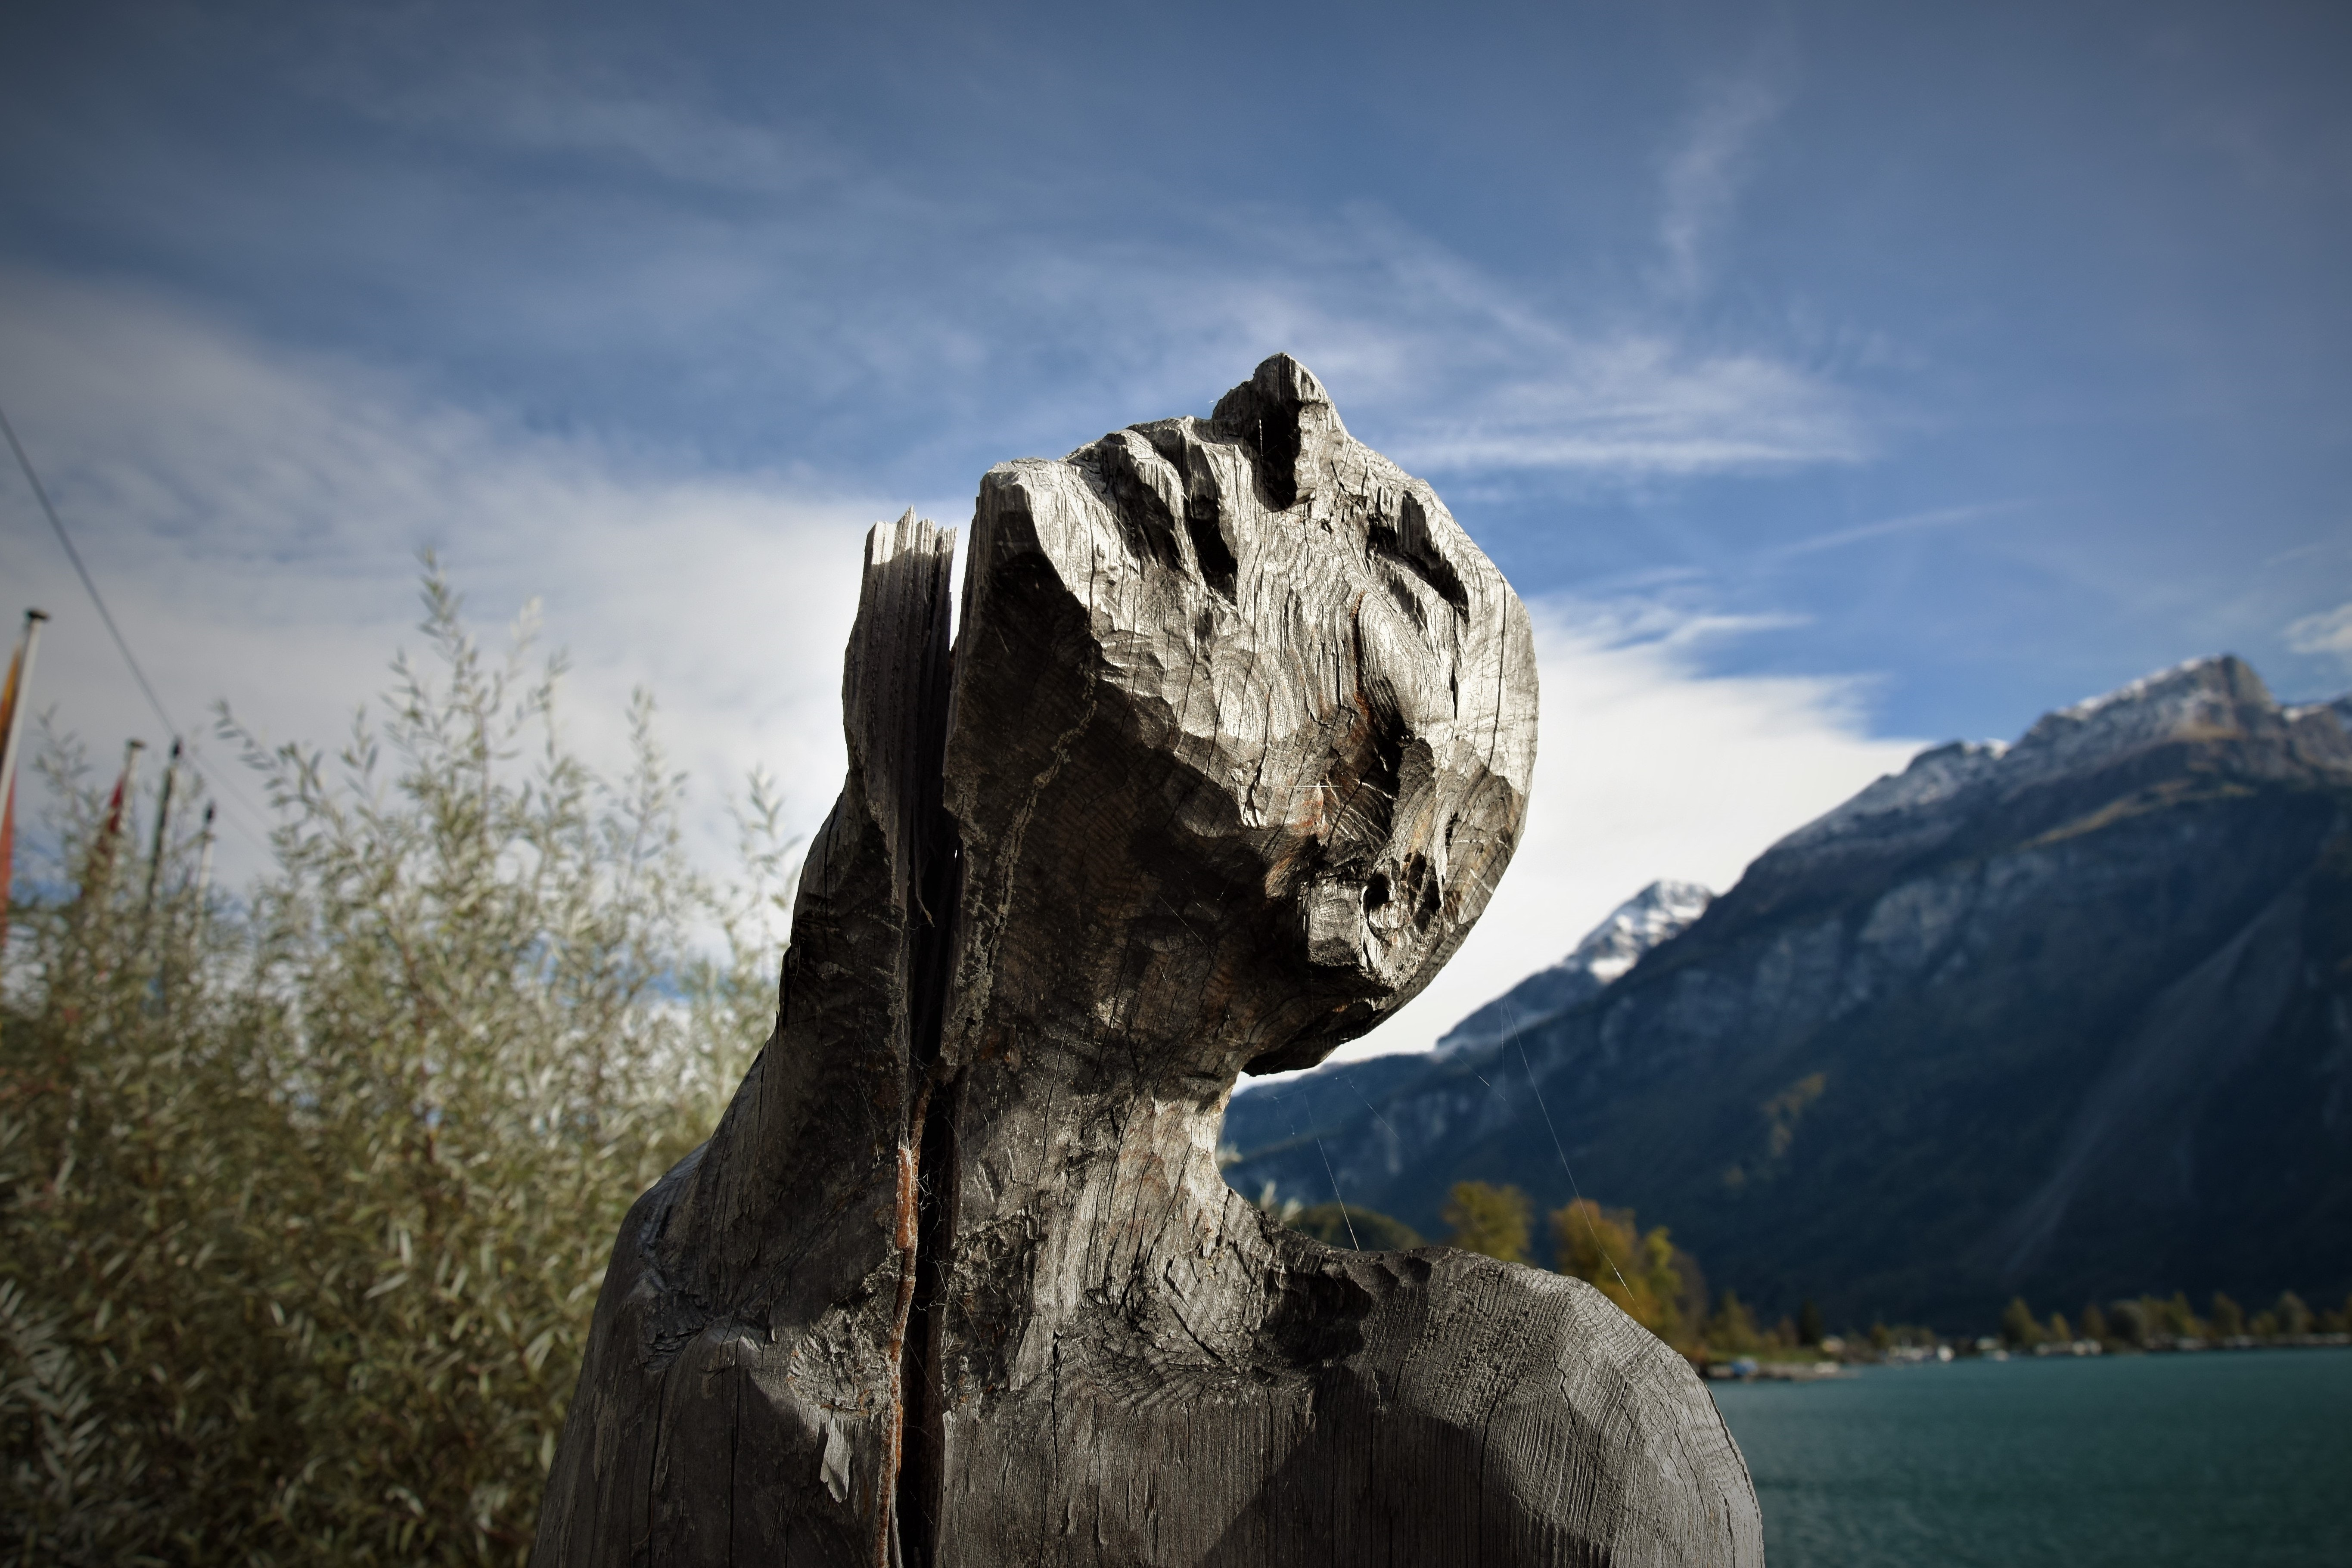 Gray man carved stone photography